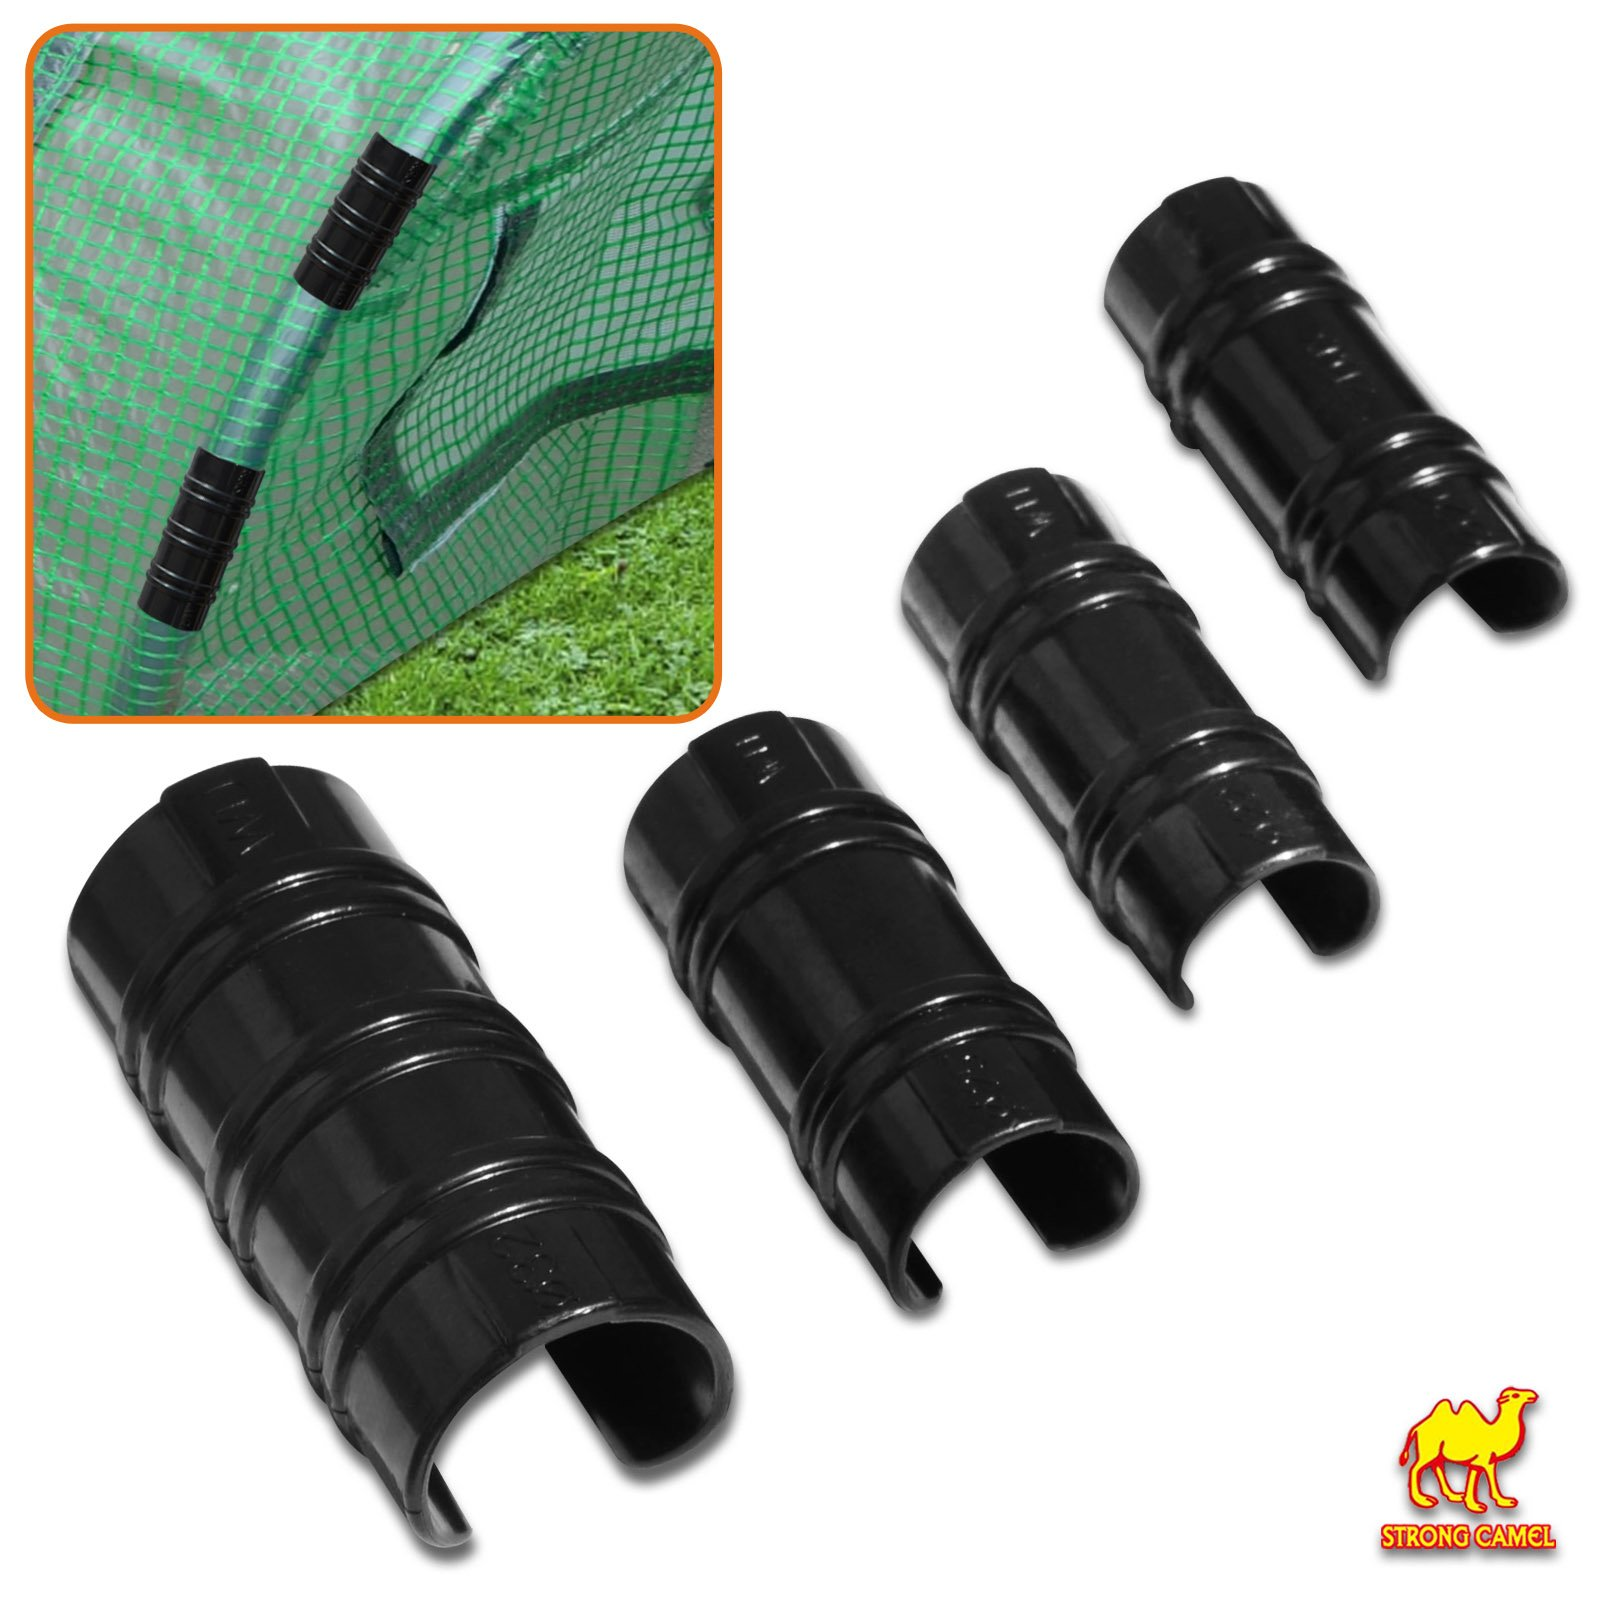 Strong Camel ABS Snap Clamp 1 inch x 2-1/2 Wide for 1 inch Pipe to Secure Plastic/ Fabric Attach Greenhouse Row Cover Shade (10pcs)